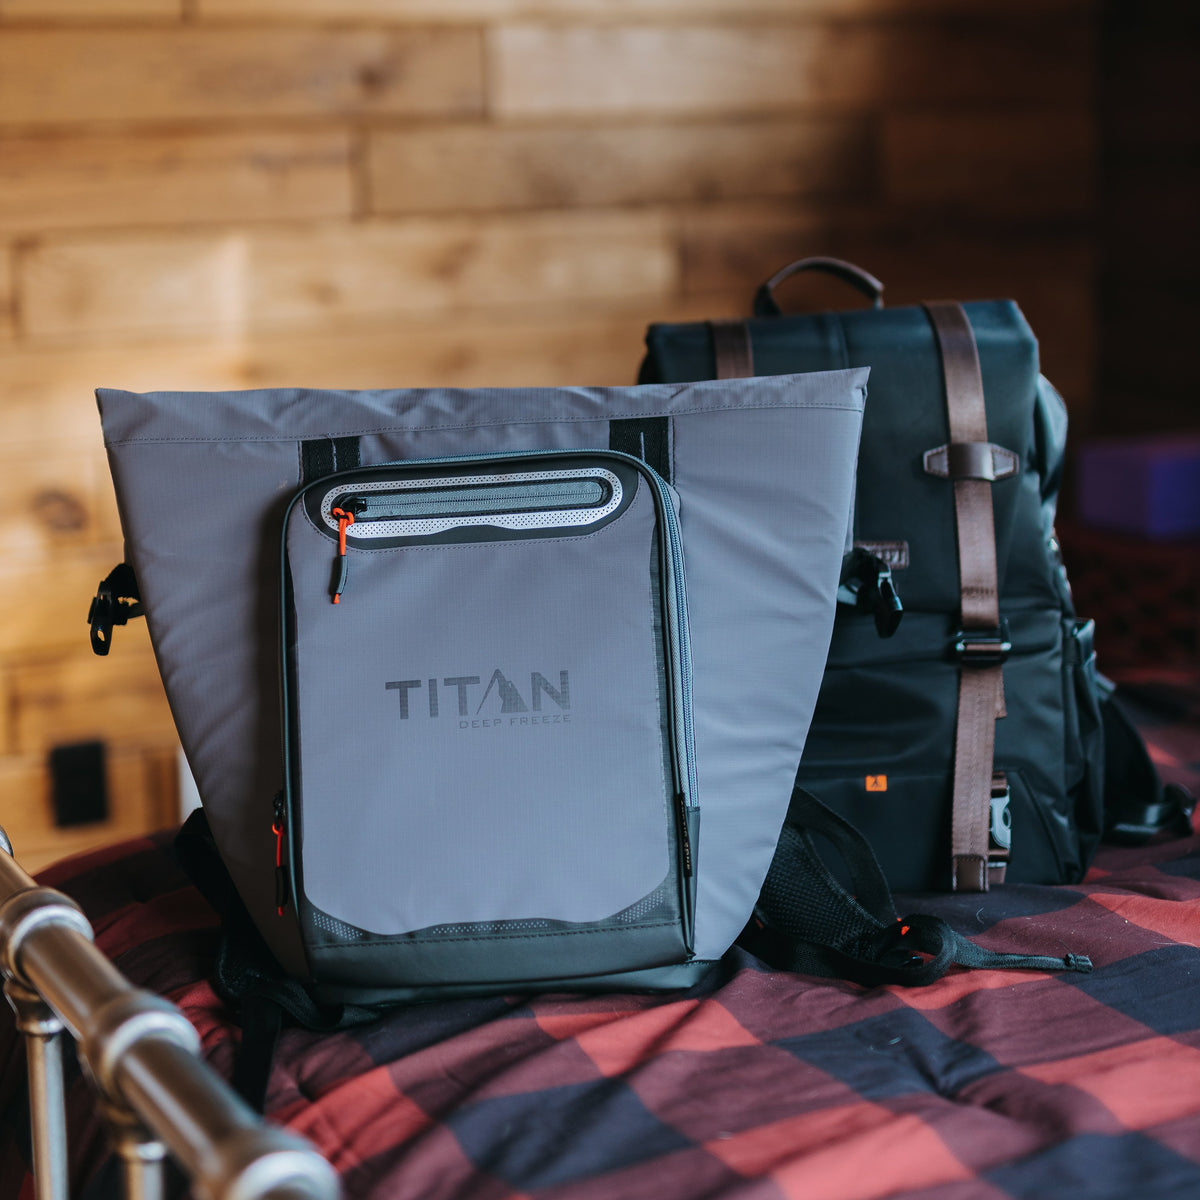 Titan Deep Freeze® 20 Can Rolltop Backpack - Sharkskin Gray - Lifestyle, cooler on bed